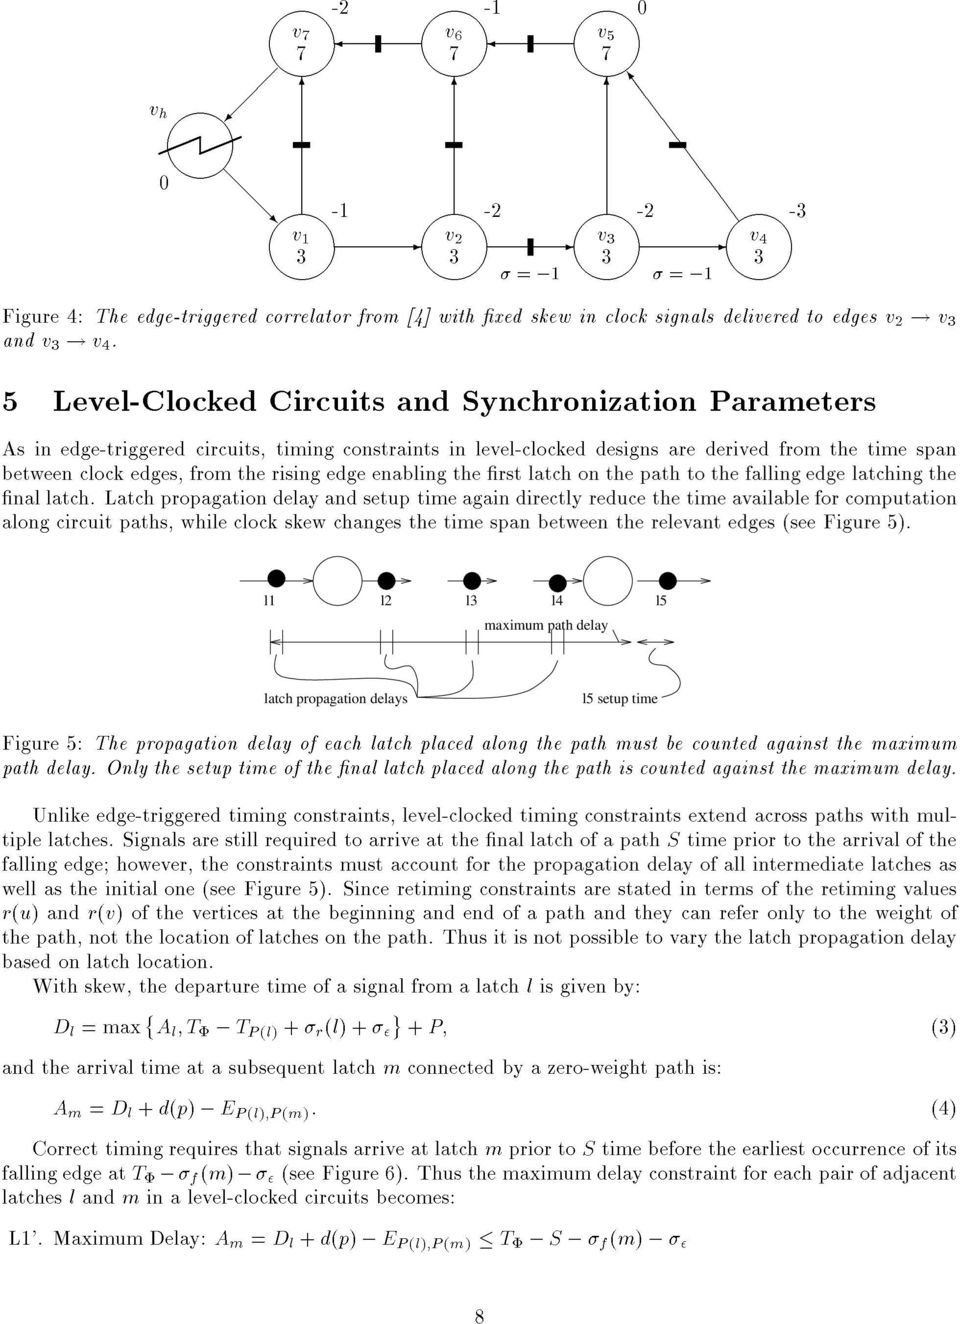 5 Level-Clocked Circuits and ynchronization Parameters As in edge-triggered circuits, timing constraints in level-clocked designs are derived from the time span between clock edges, from the rising